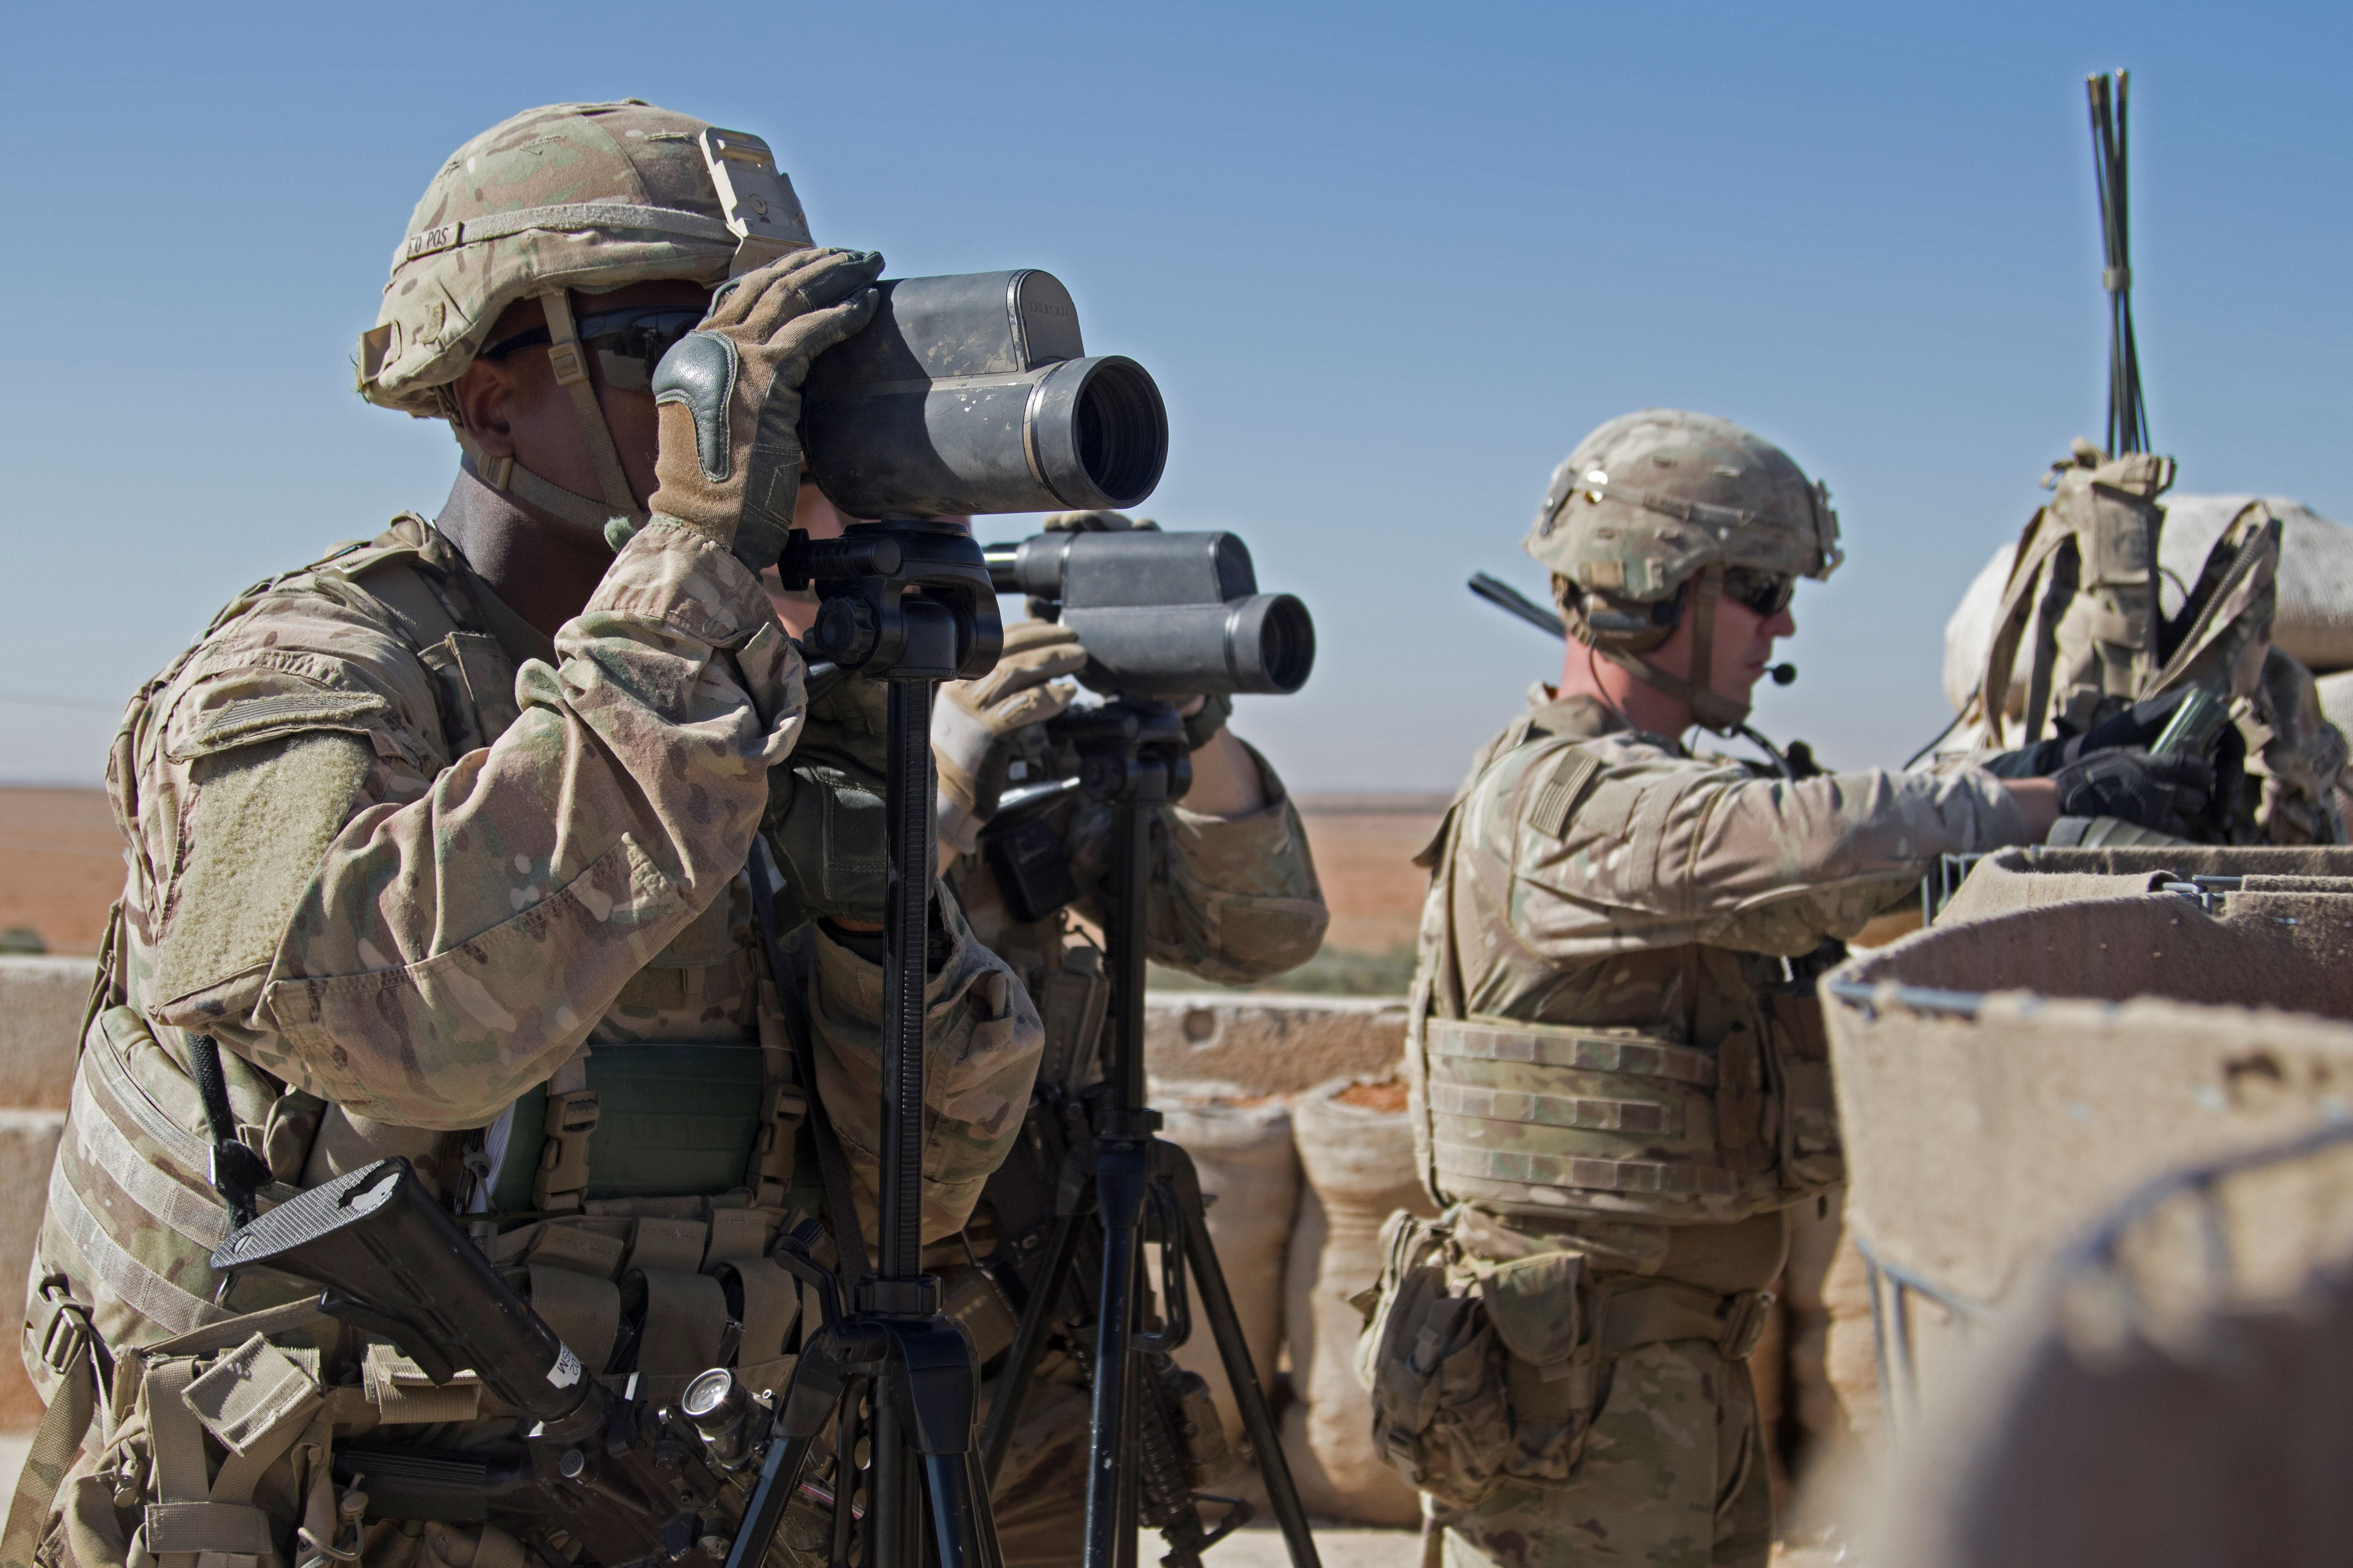 U.S. Soldiers surveil the area during a combined joint patrol in Manbij, Syria, November 1, 2018. Picture taken November 1, 2018. Courtesy Zoe Garbarino/U.S. Army/Handout via REUTERS   ATTENTION EDITORS - THIS IMAGE HAS BEEN SUPPLIED BY A THIRD PARTY.